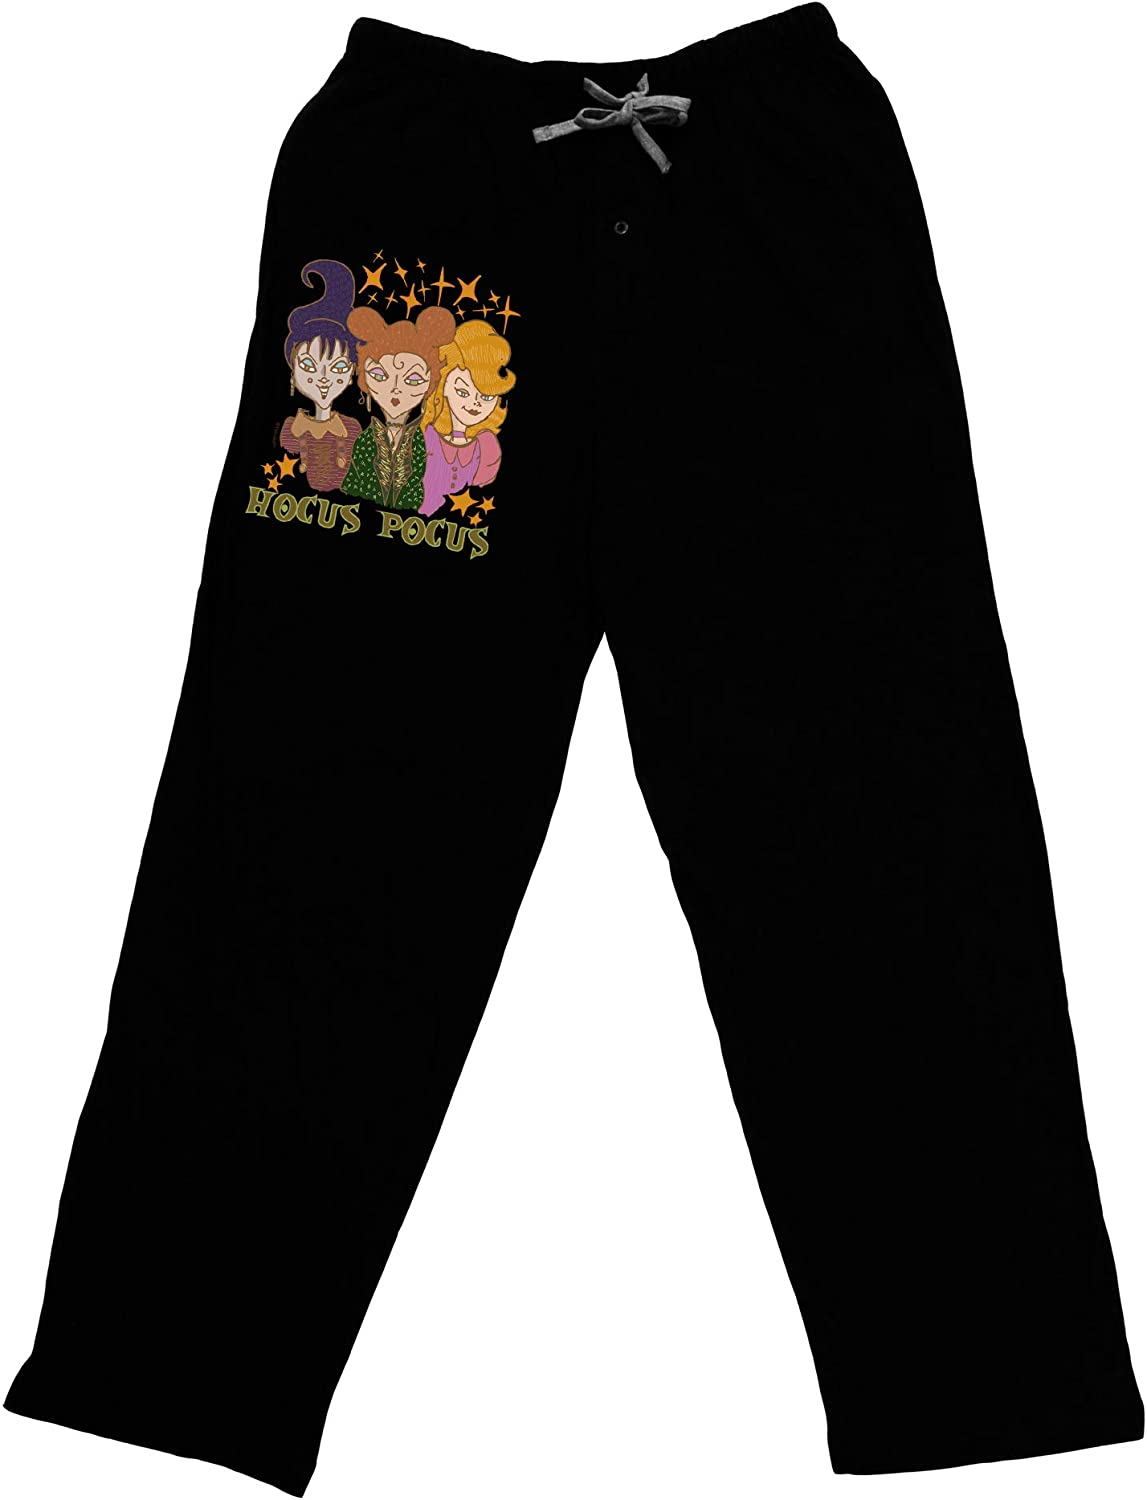 TOOLOUD Max 77% OFF Hocus Pocus Witches Adult Lounge Pants Dark Bargain